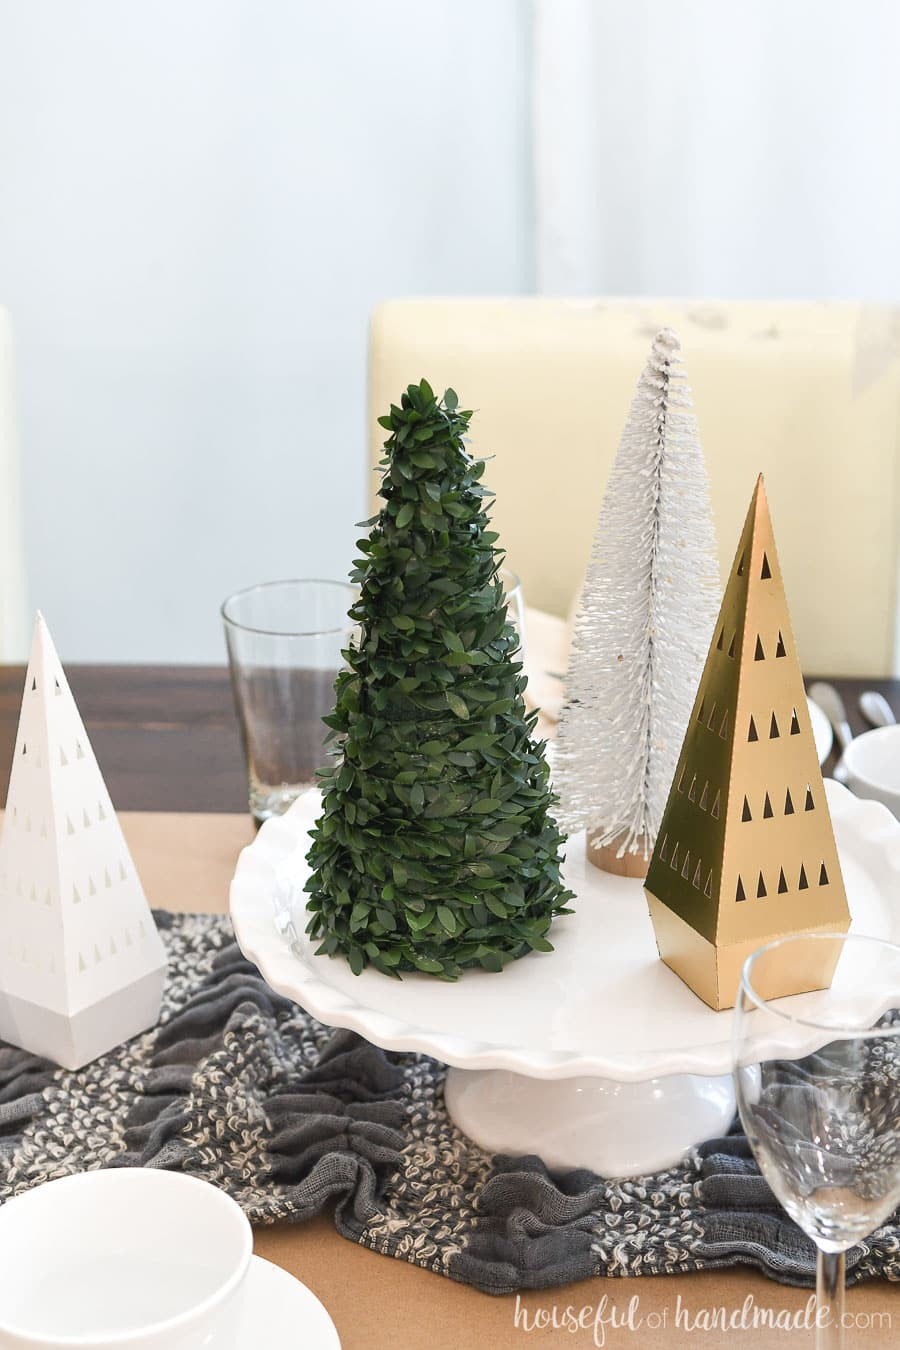 Use a cake plate to add height to the center of a table when decorating.